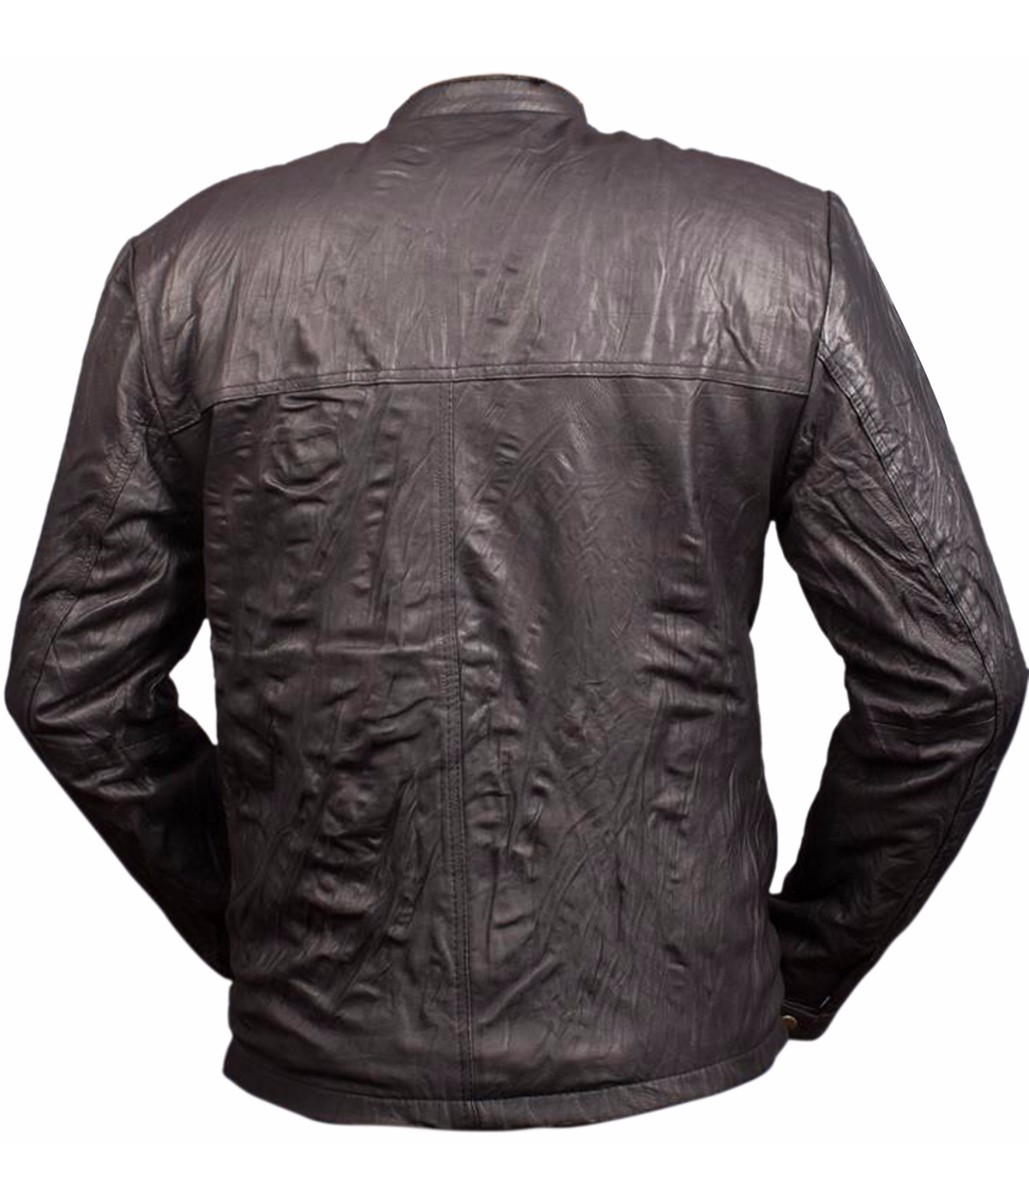 17 AGAIN ZAC EFRON OBLOW WRINKLED LEATHER JACKET AT LOW PRICES